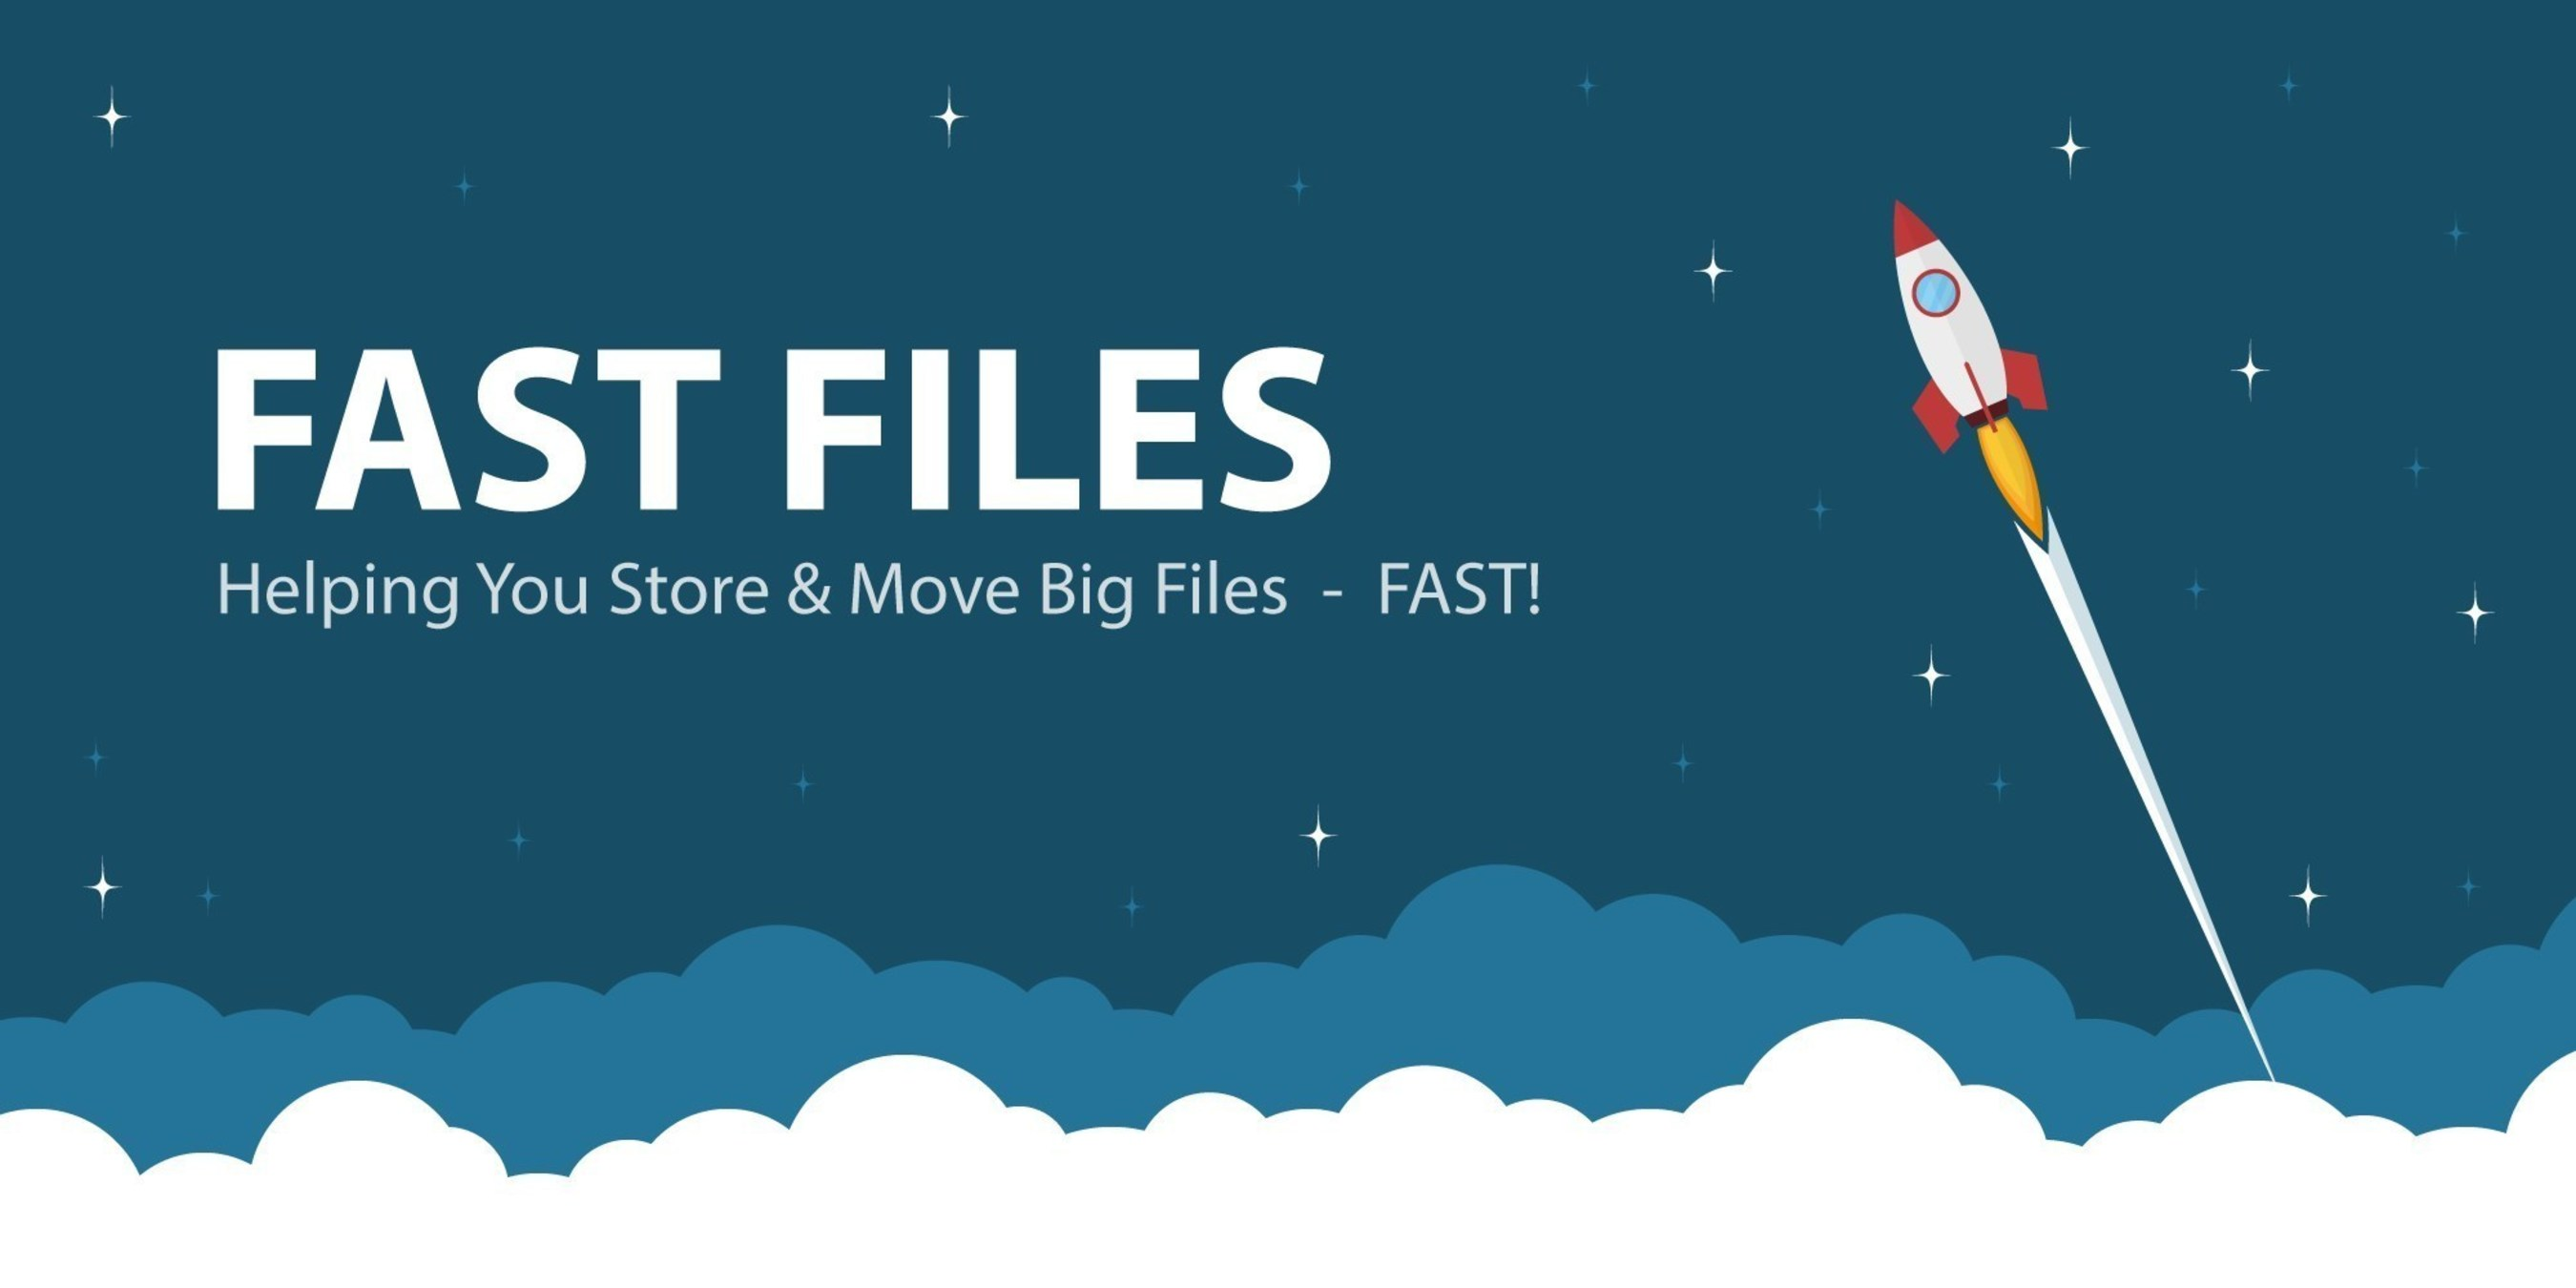 RemoteRelief Introduces Fast Files Service for Transferring Massive Files Quickly